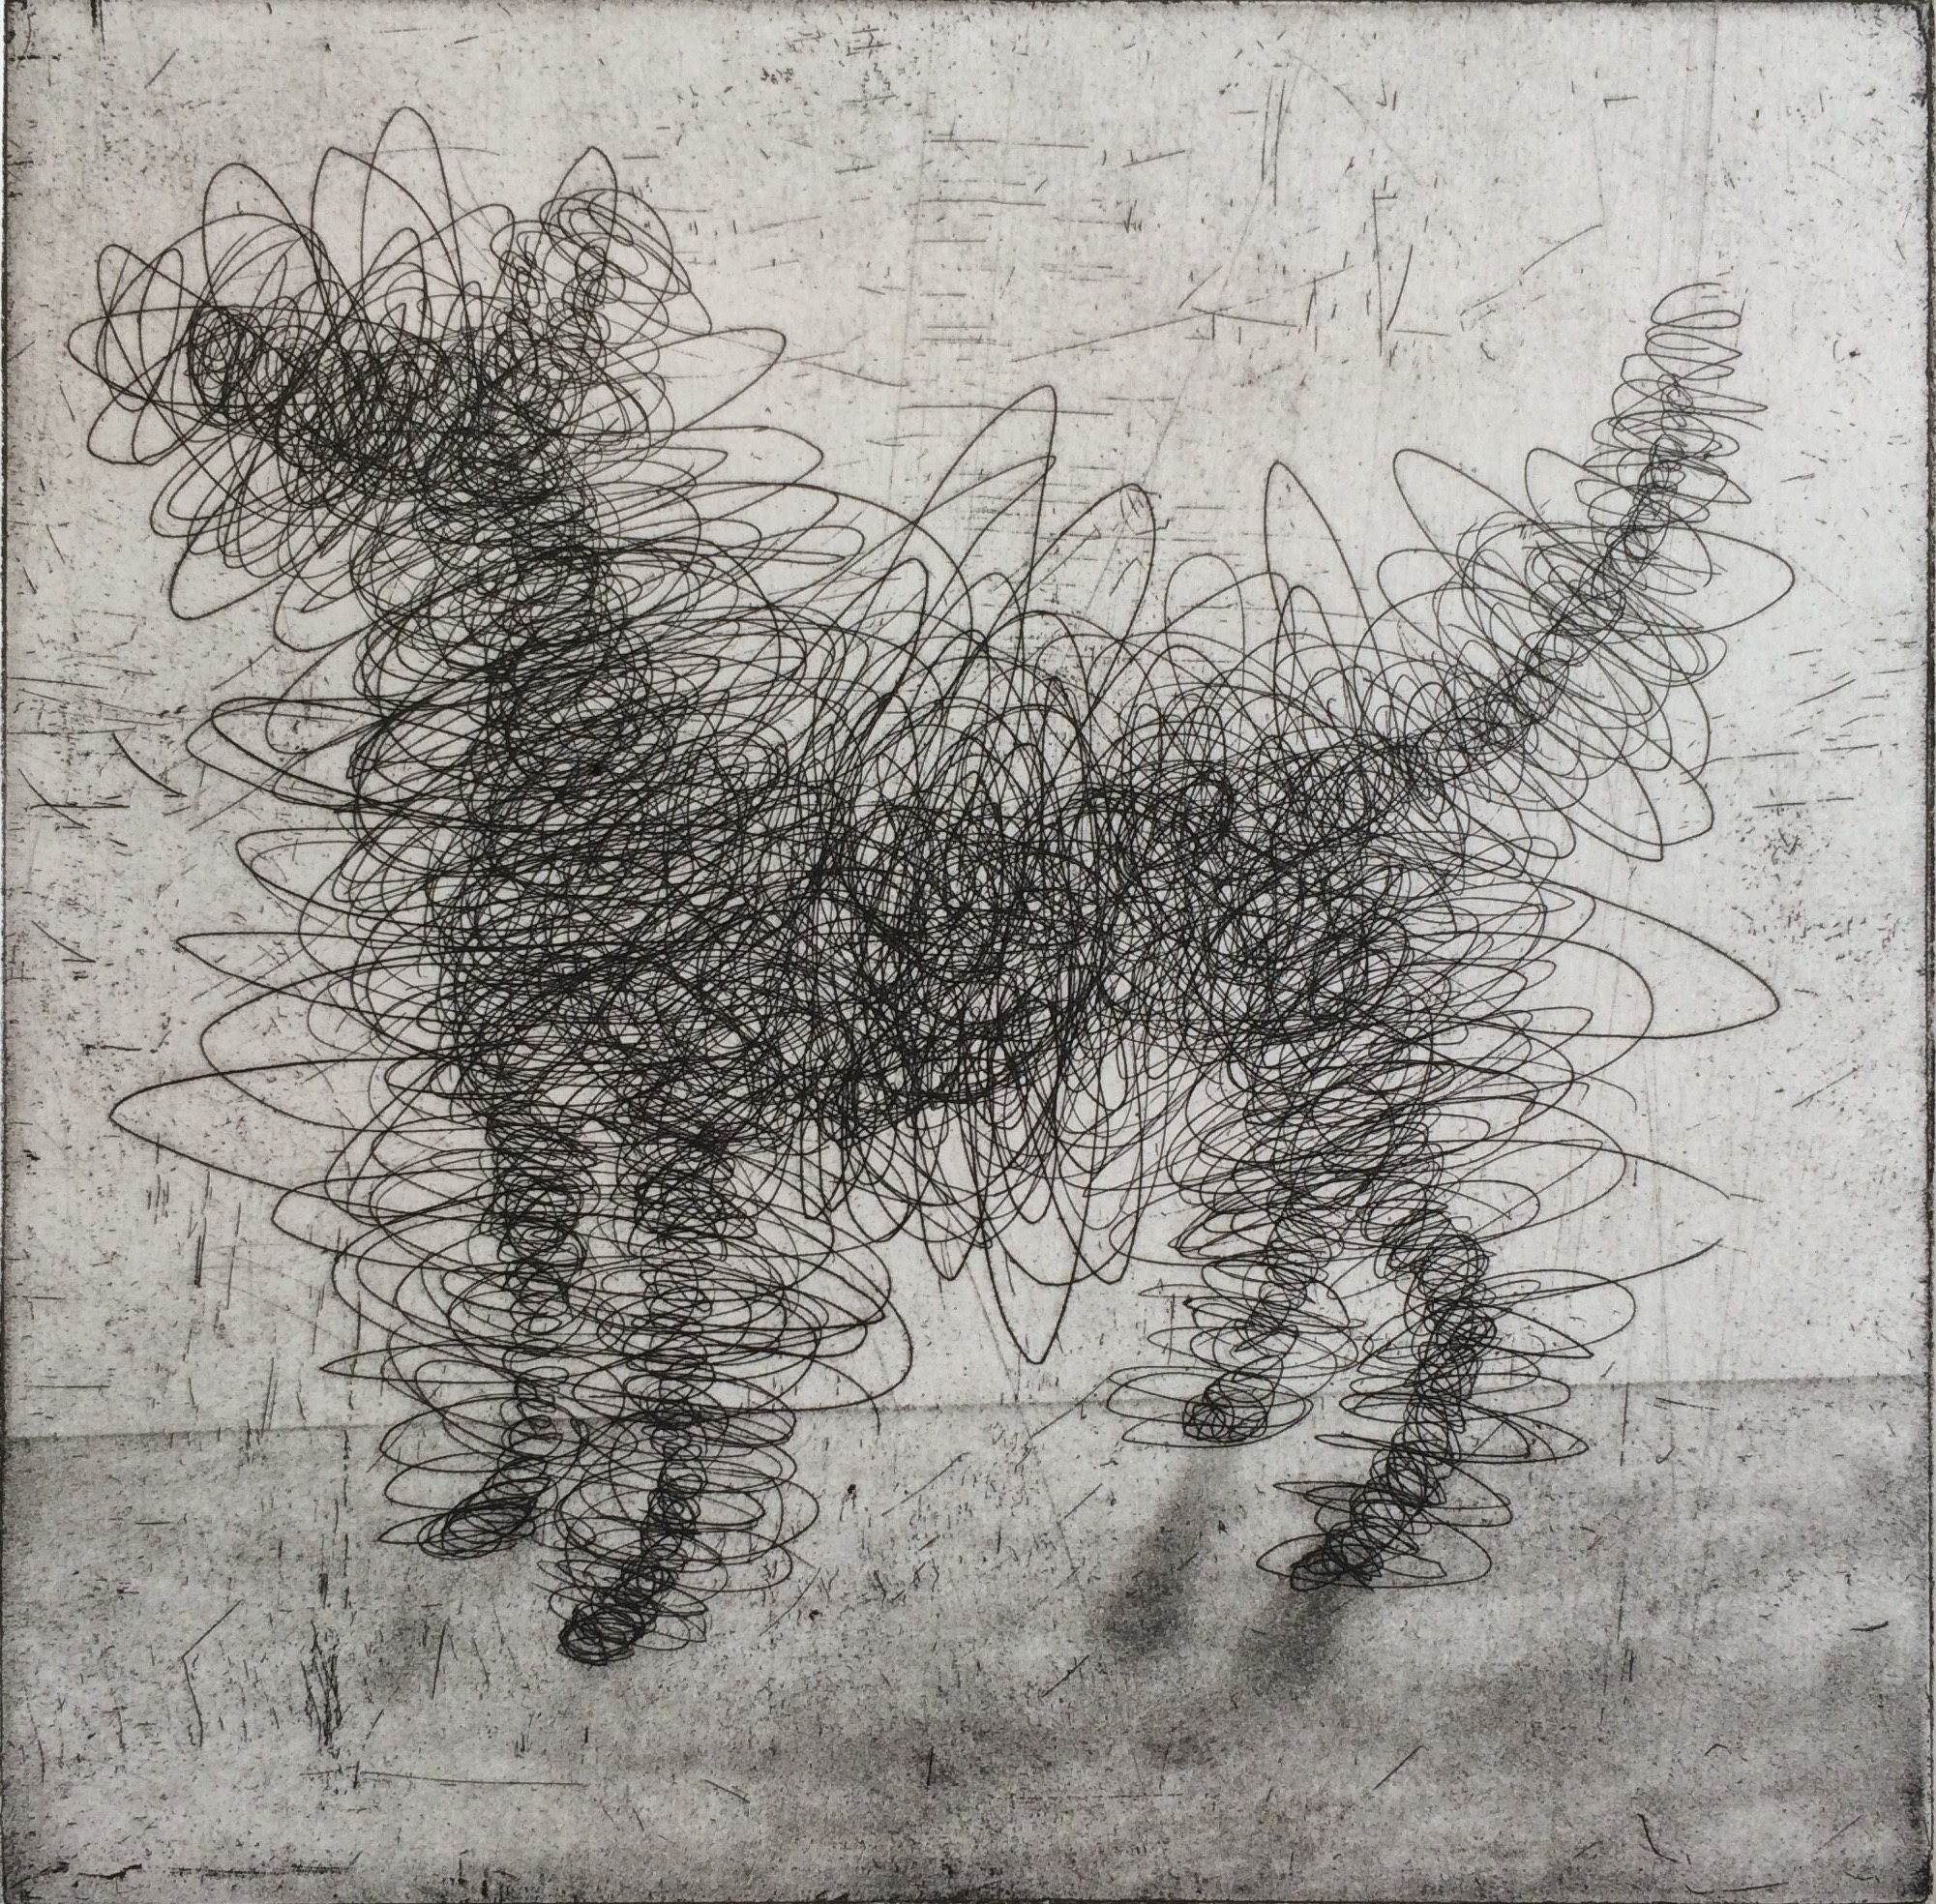 Gormley's Dog   etching   SOLD OUT